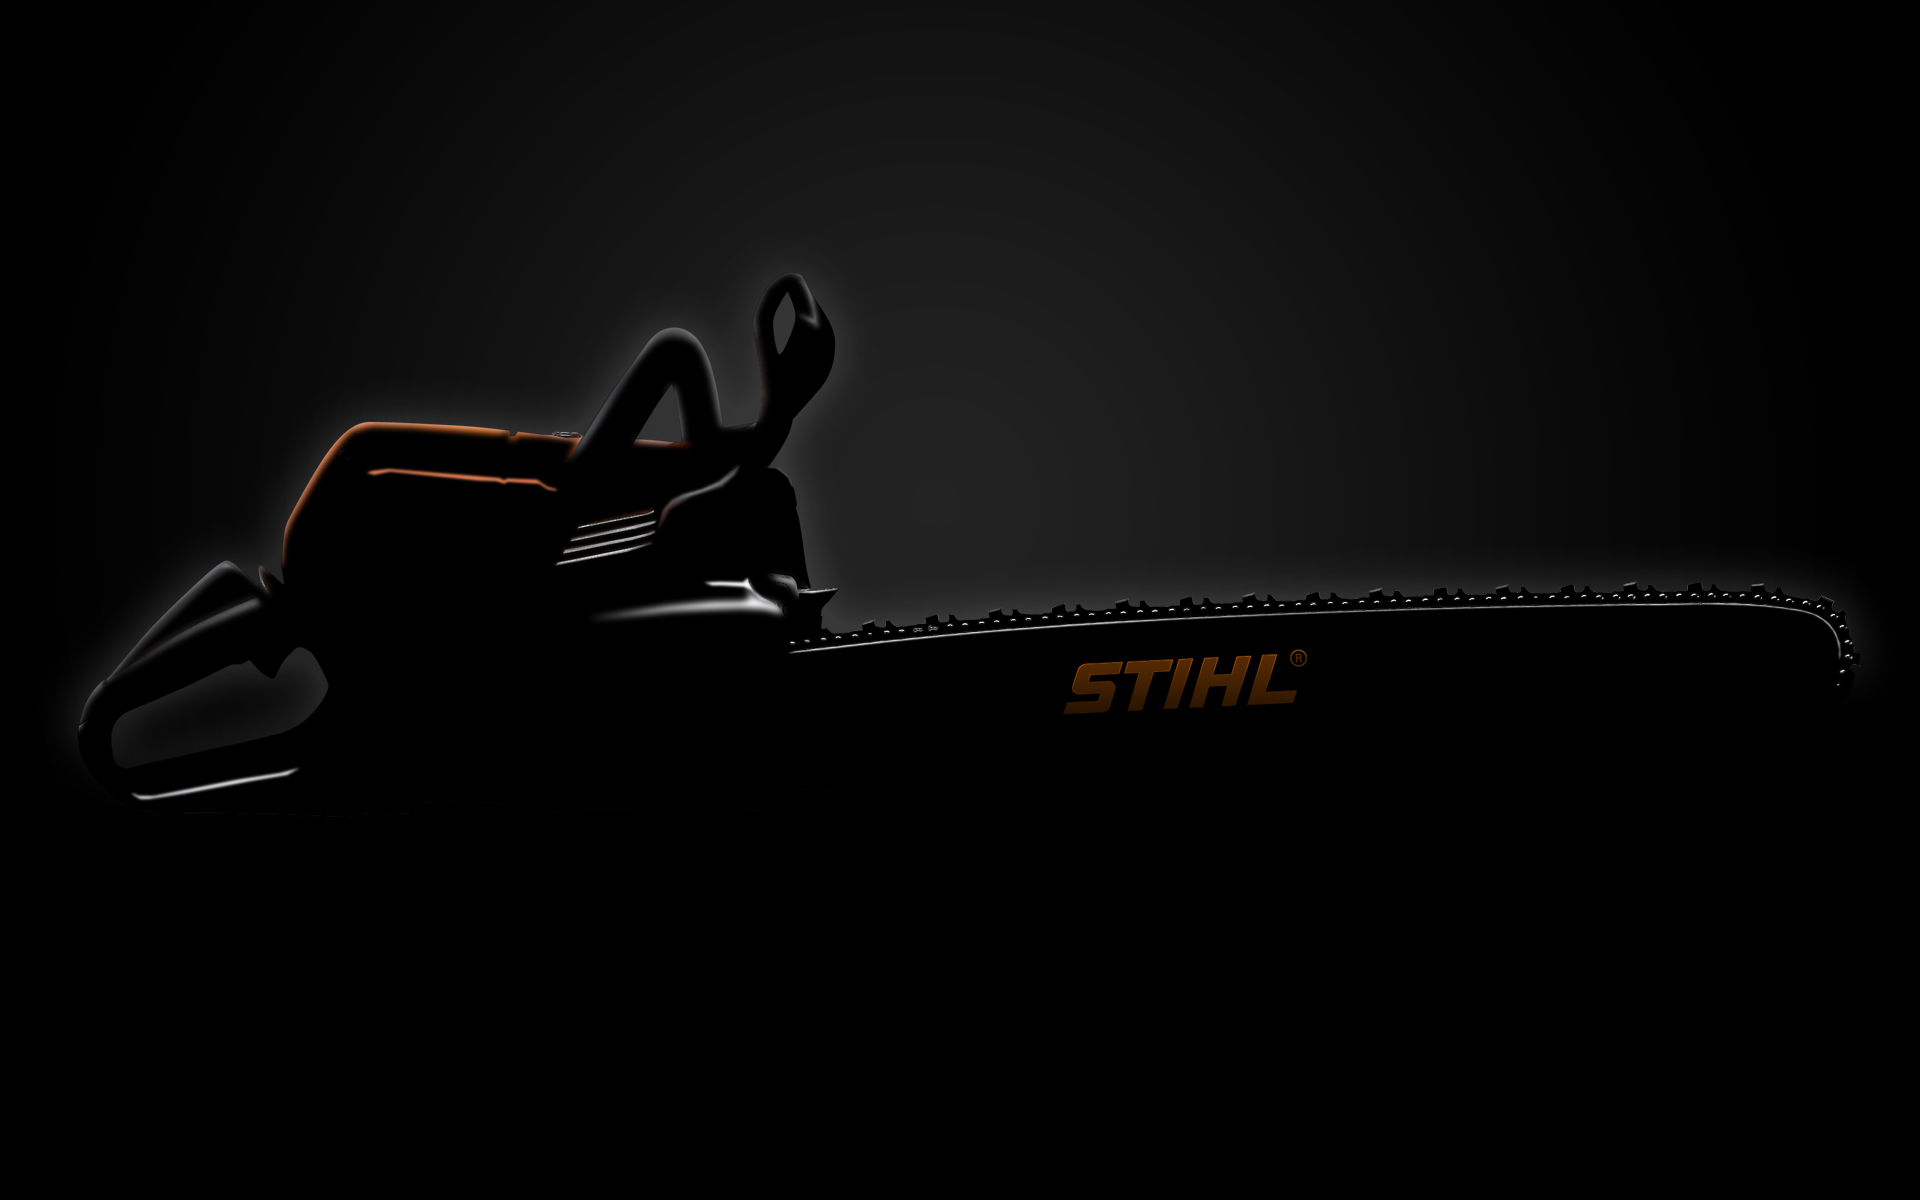 stihl chainsaw wallpaper. stihl and viking wallpapers stihl chainsaw wallpaper )